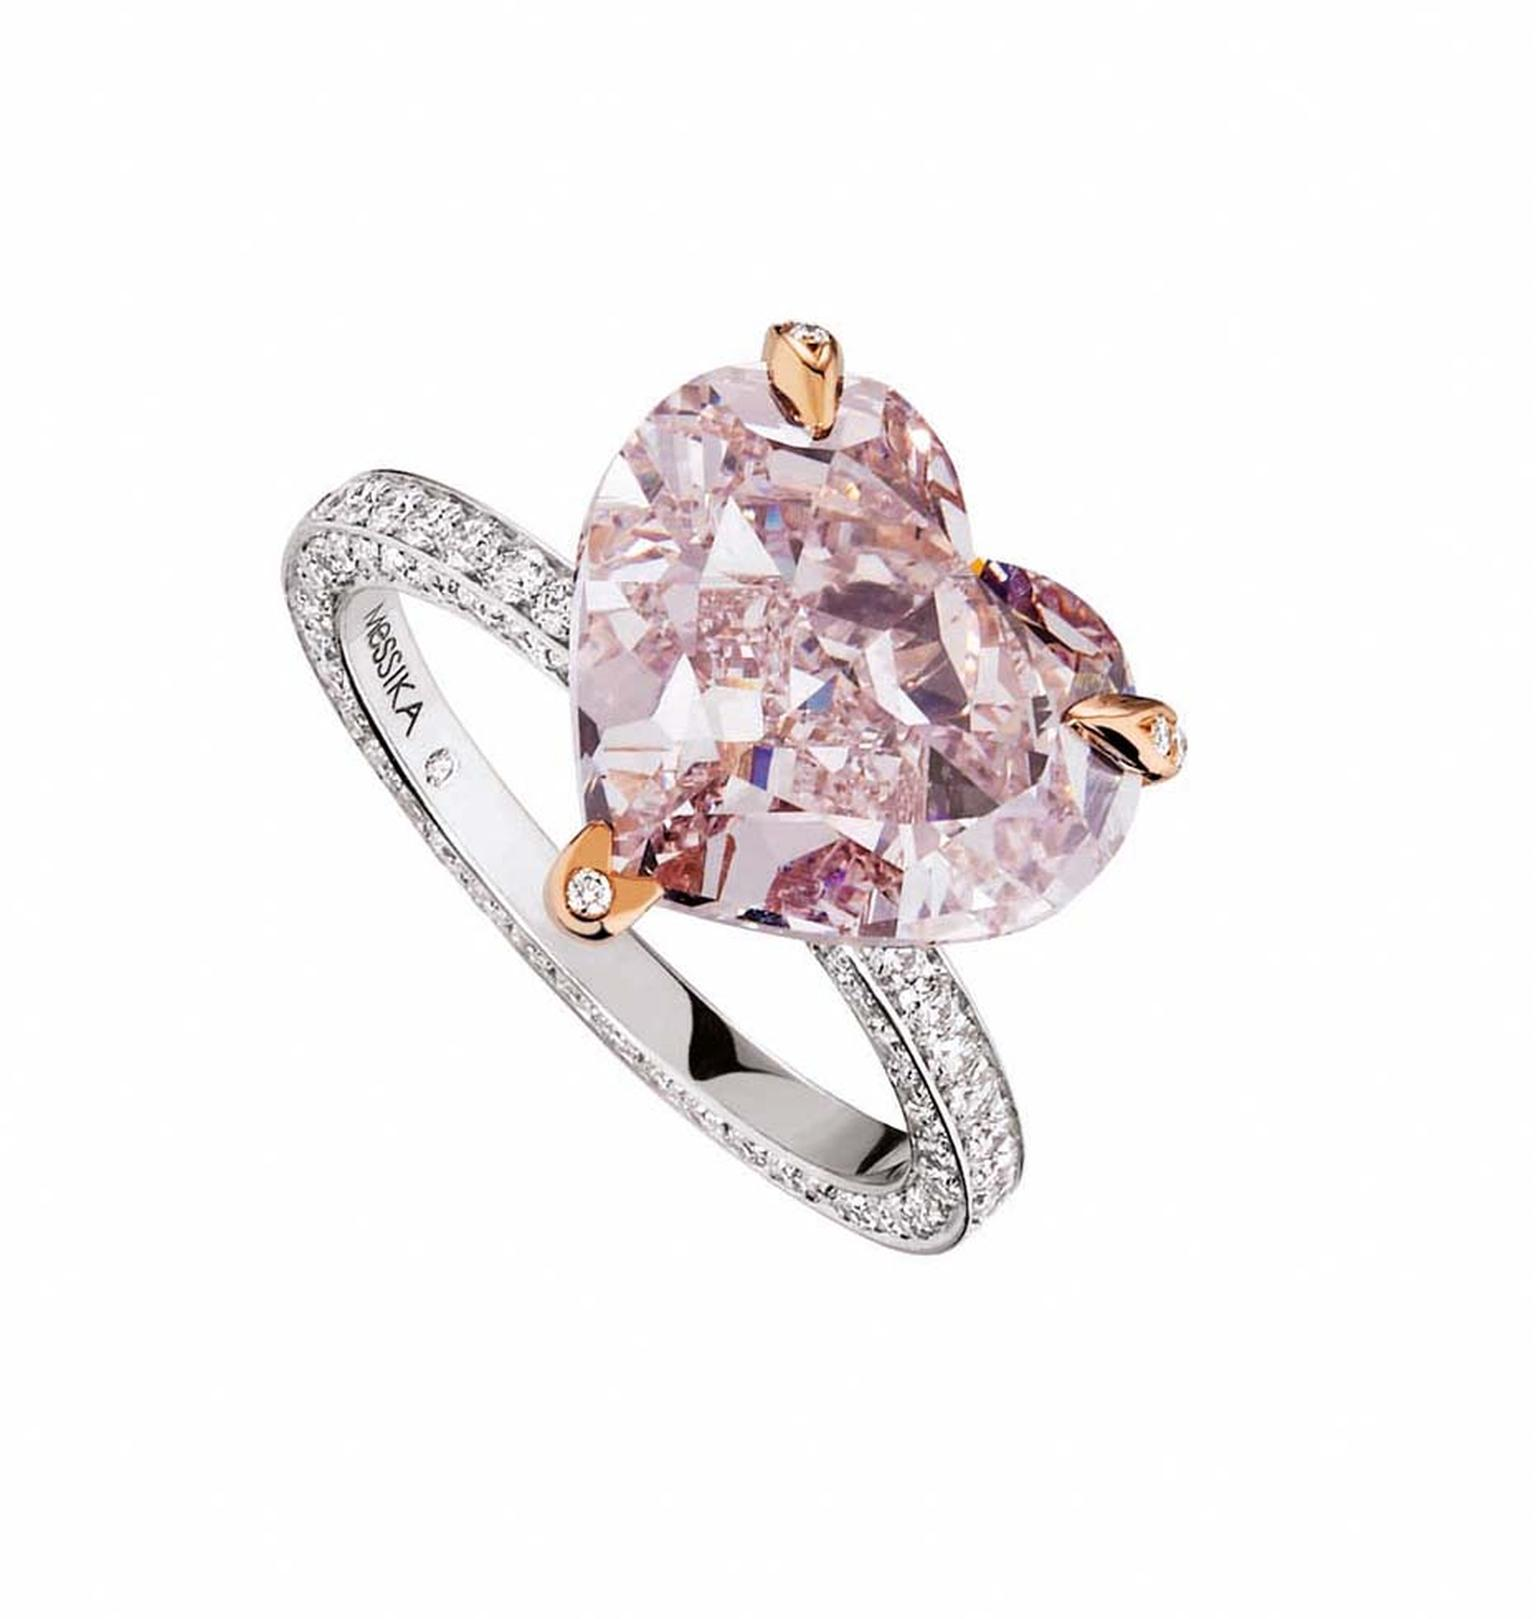 rings cut jewellery pav ring crop upscale product diamonds flame shop subsampling graff engagement with oval diamond scale pink false